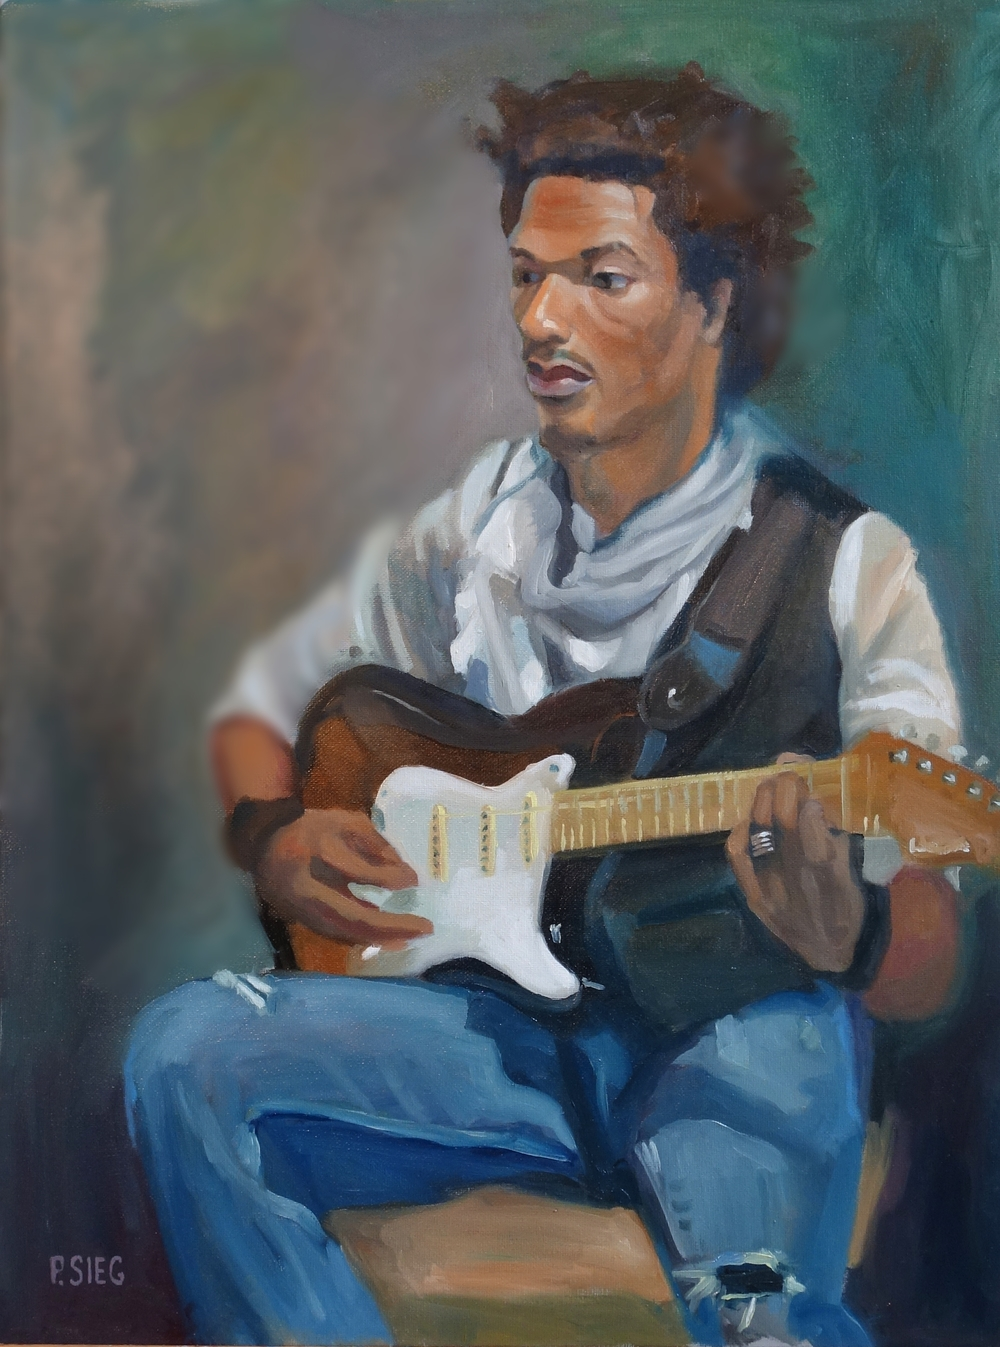 """Scarf, Guitar and Torn Jeans  18"""" x 24"""", oil on canvas For Sale,  contact the artist"""